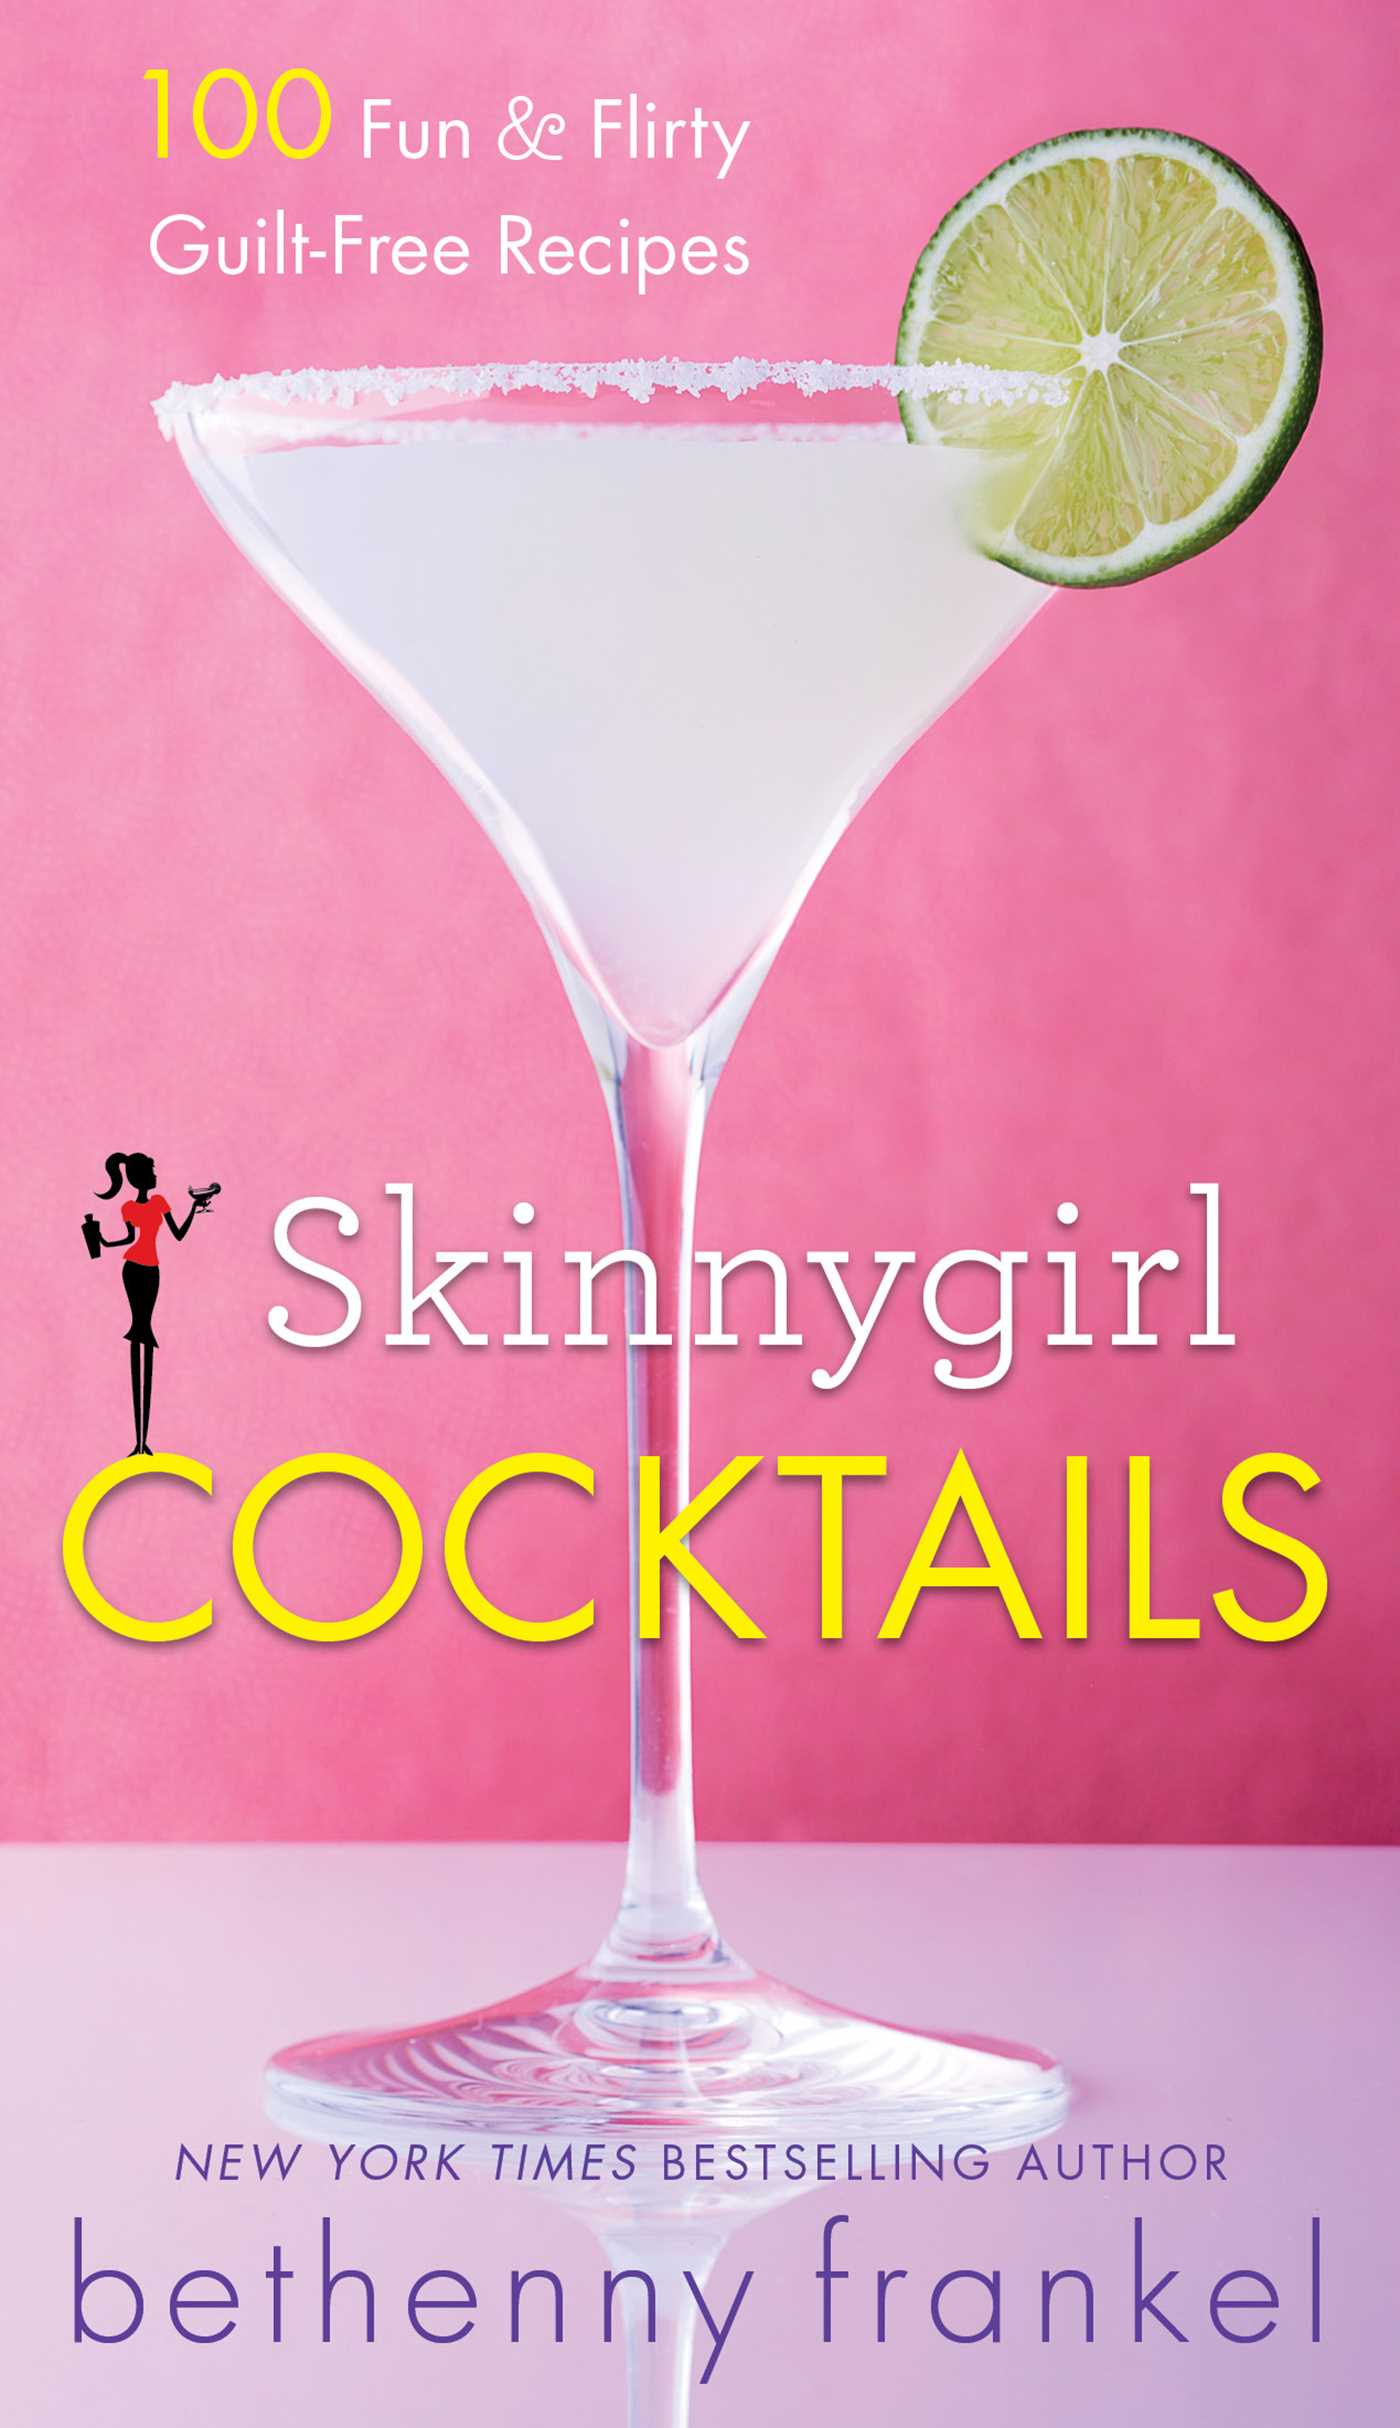 Skinnygirl cocktails 9781476773025 hr